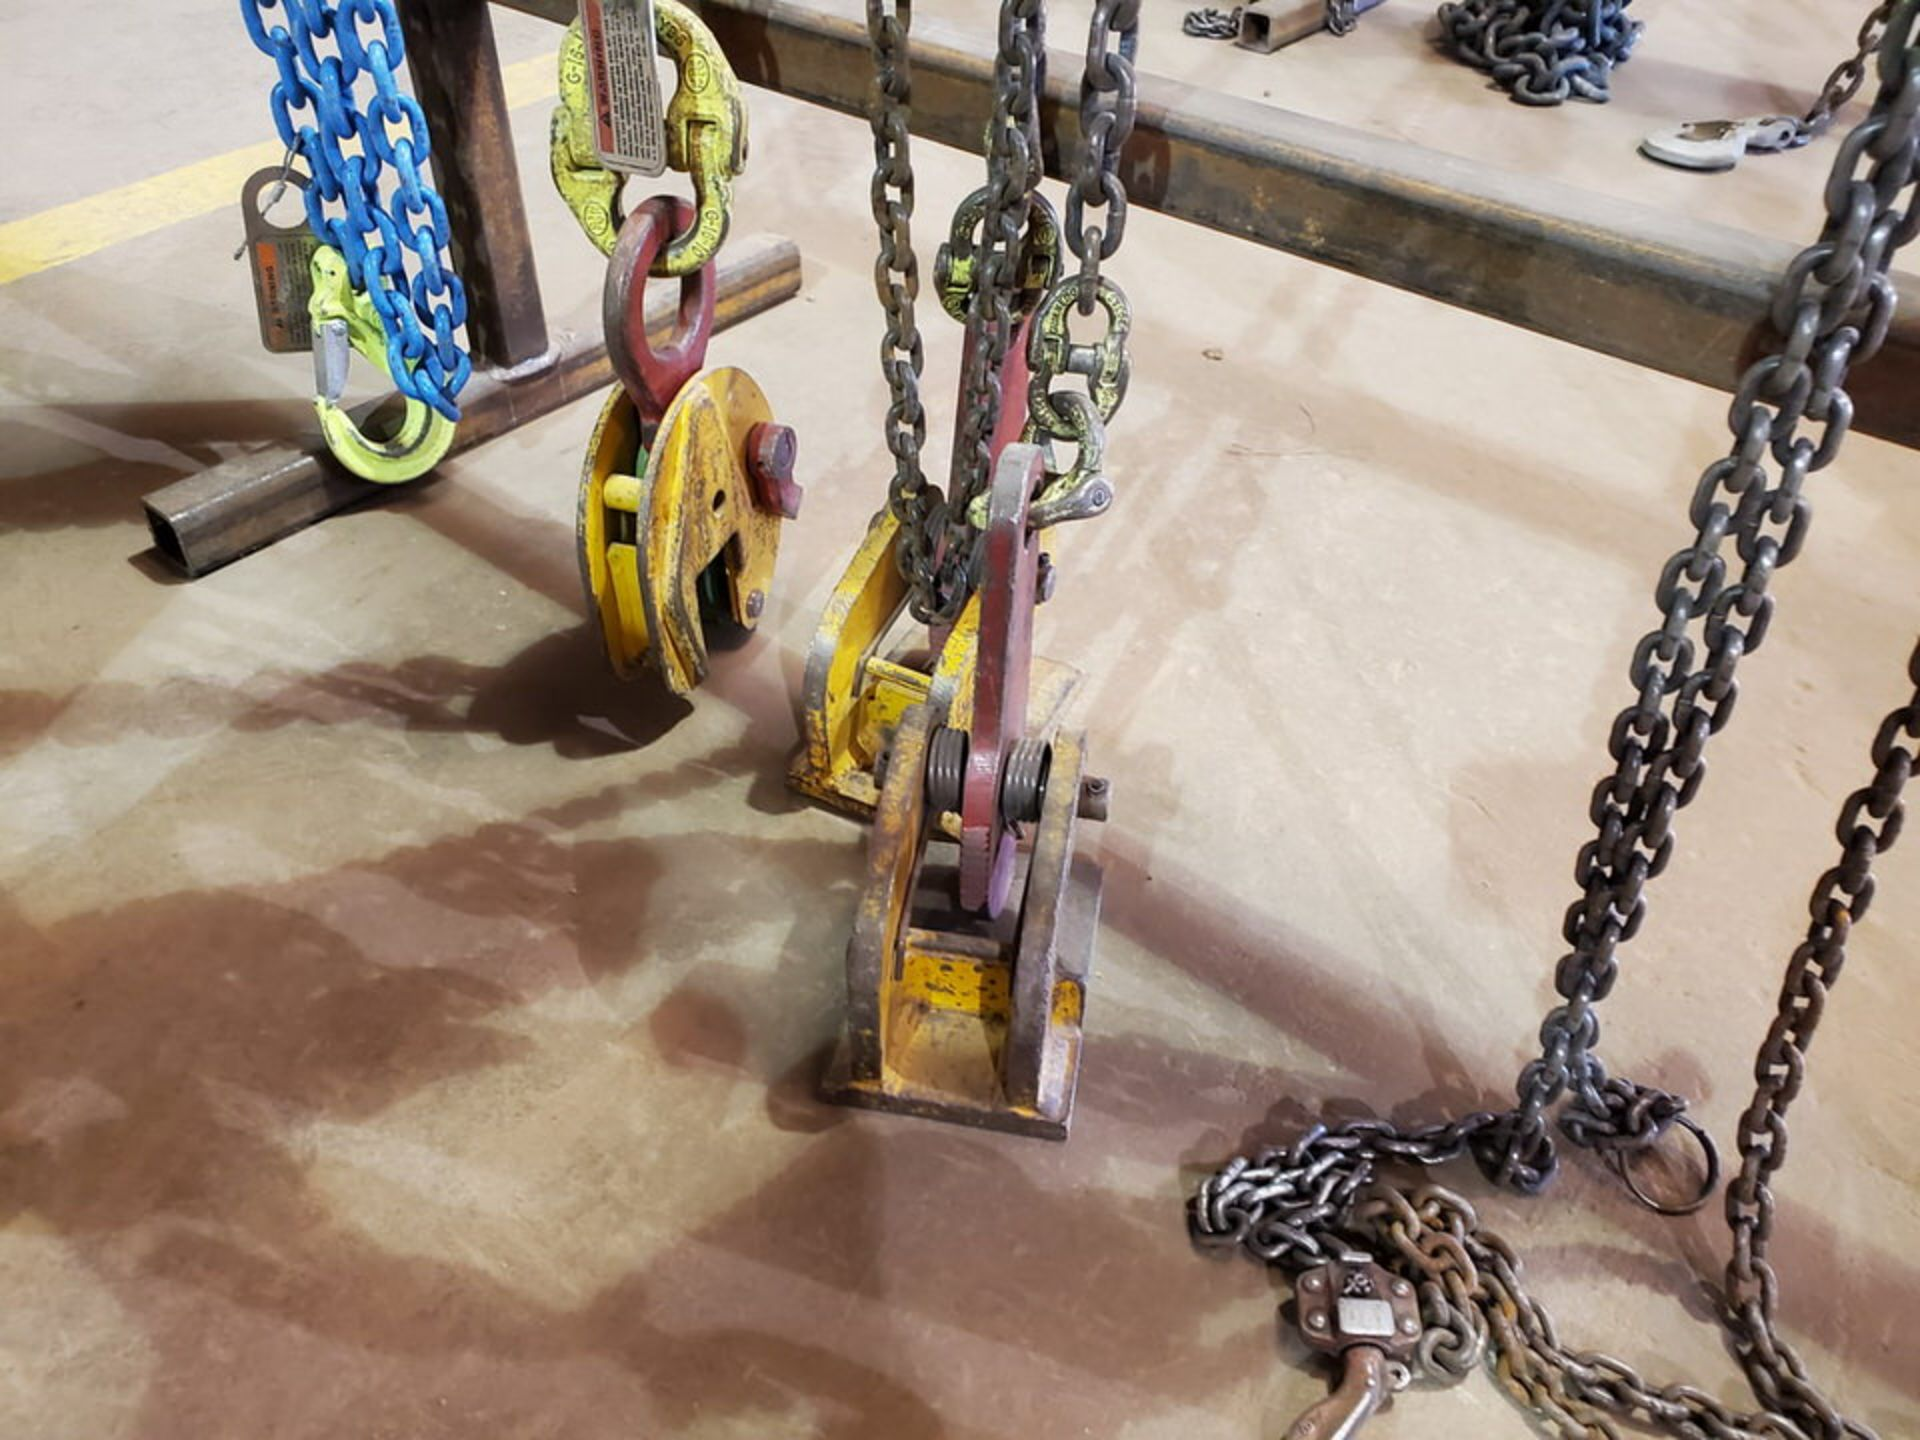 Assorted Lifting Chains & Straps W/ Rack 1 Ton & Other - Image 6 of 8